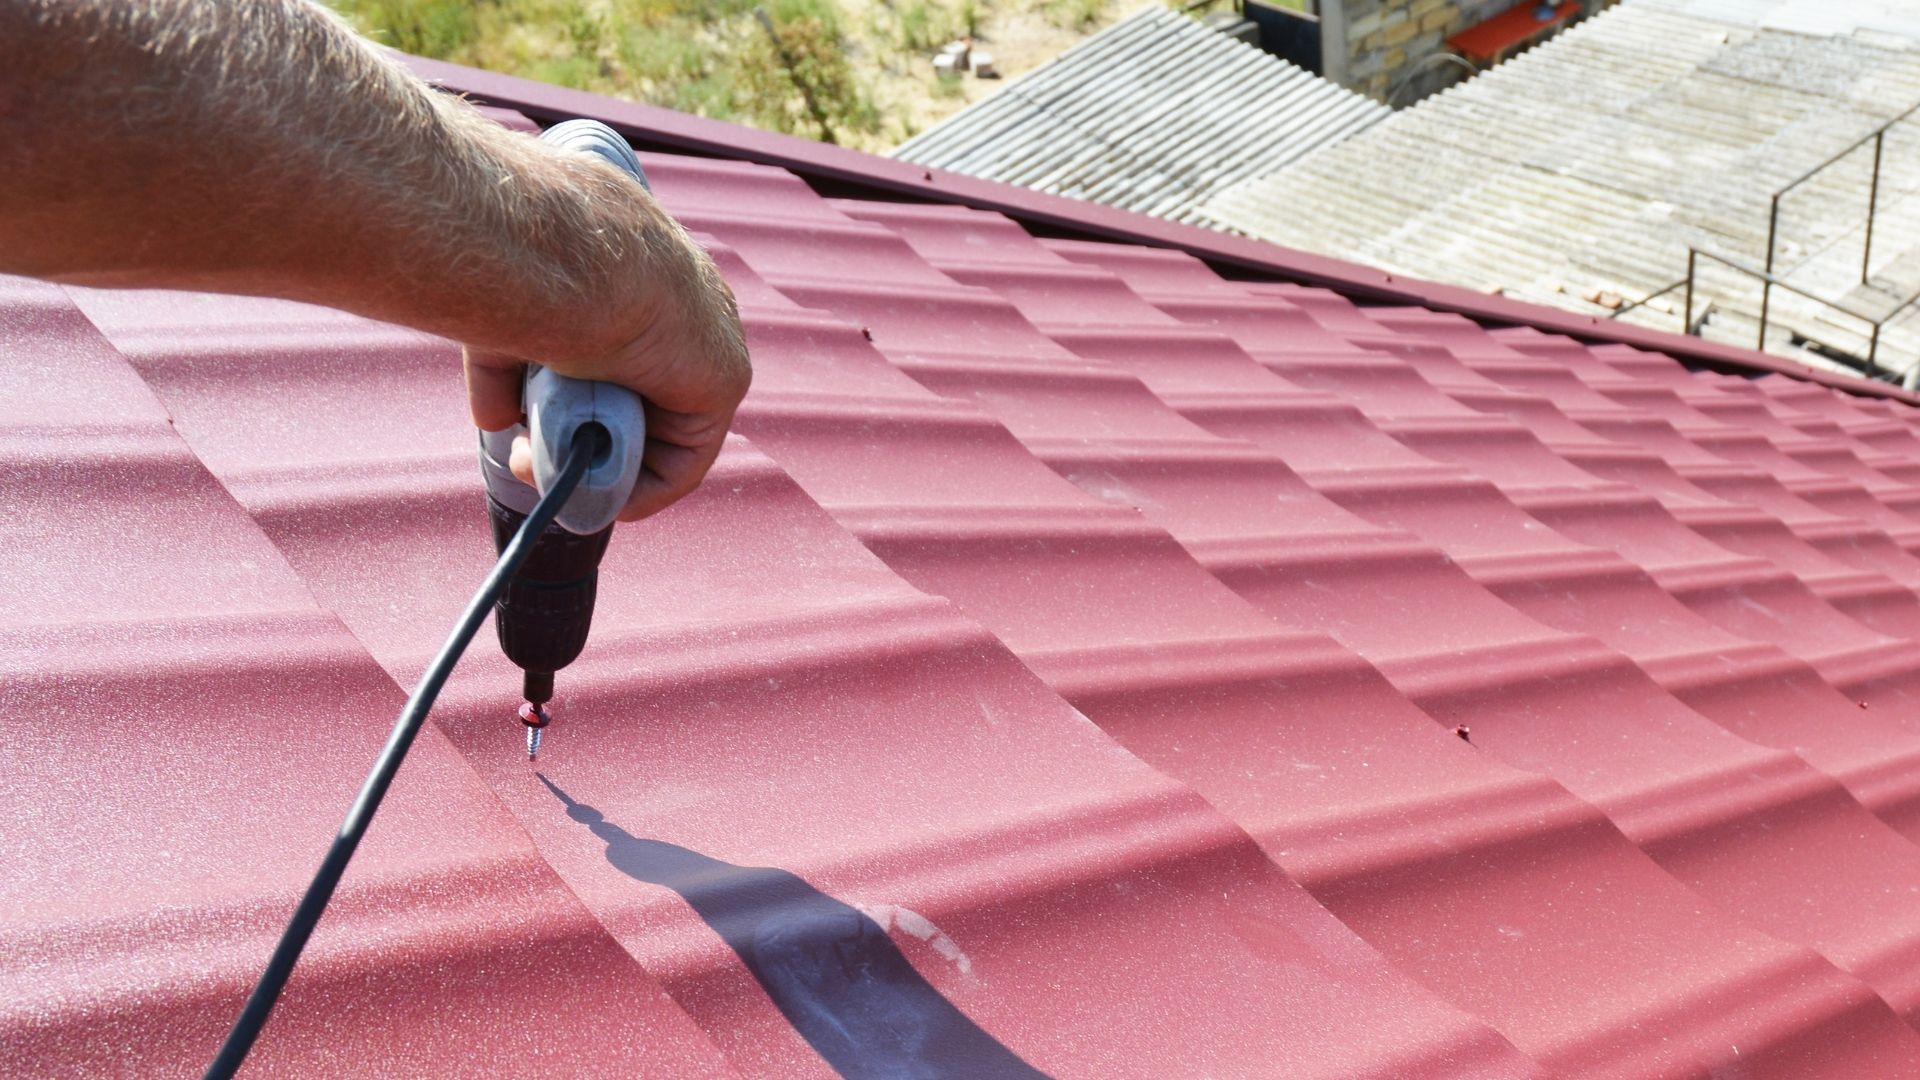 How do you find a reliable roofing contractor?